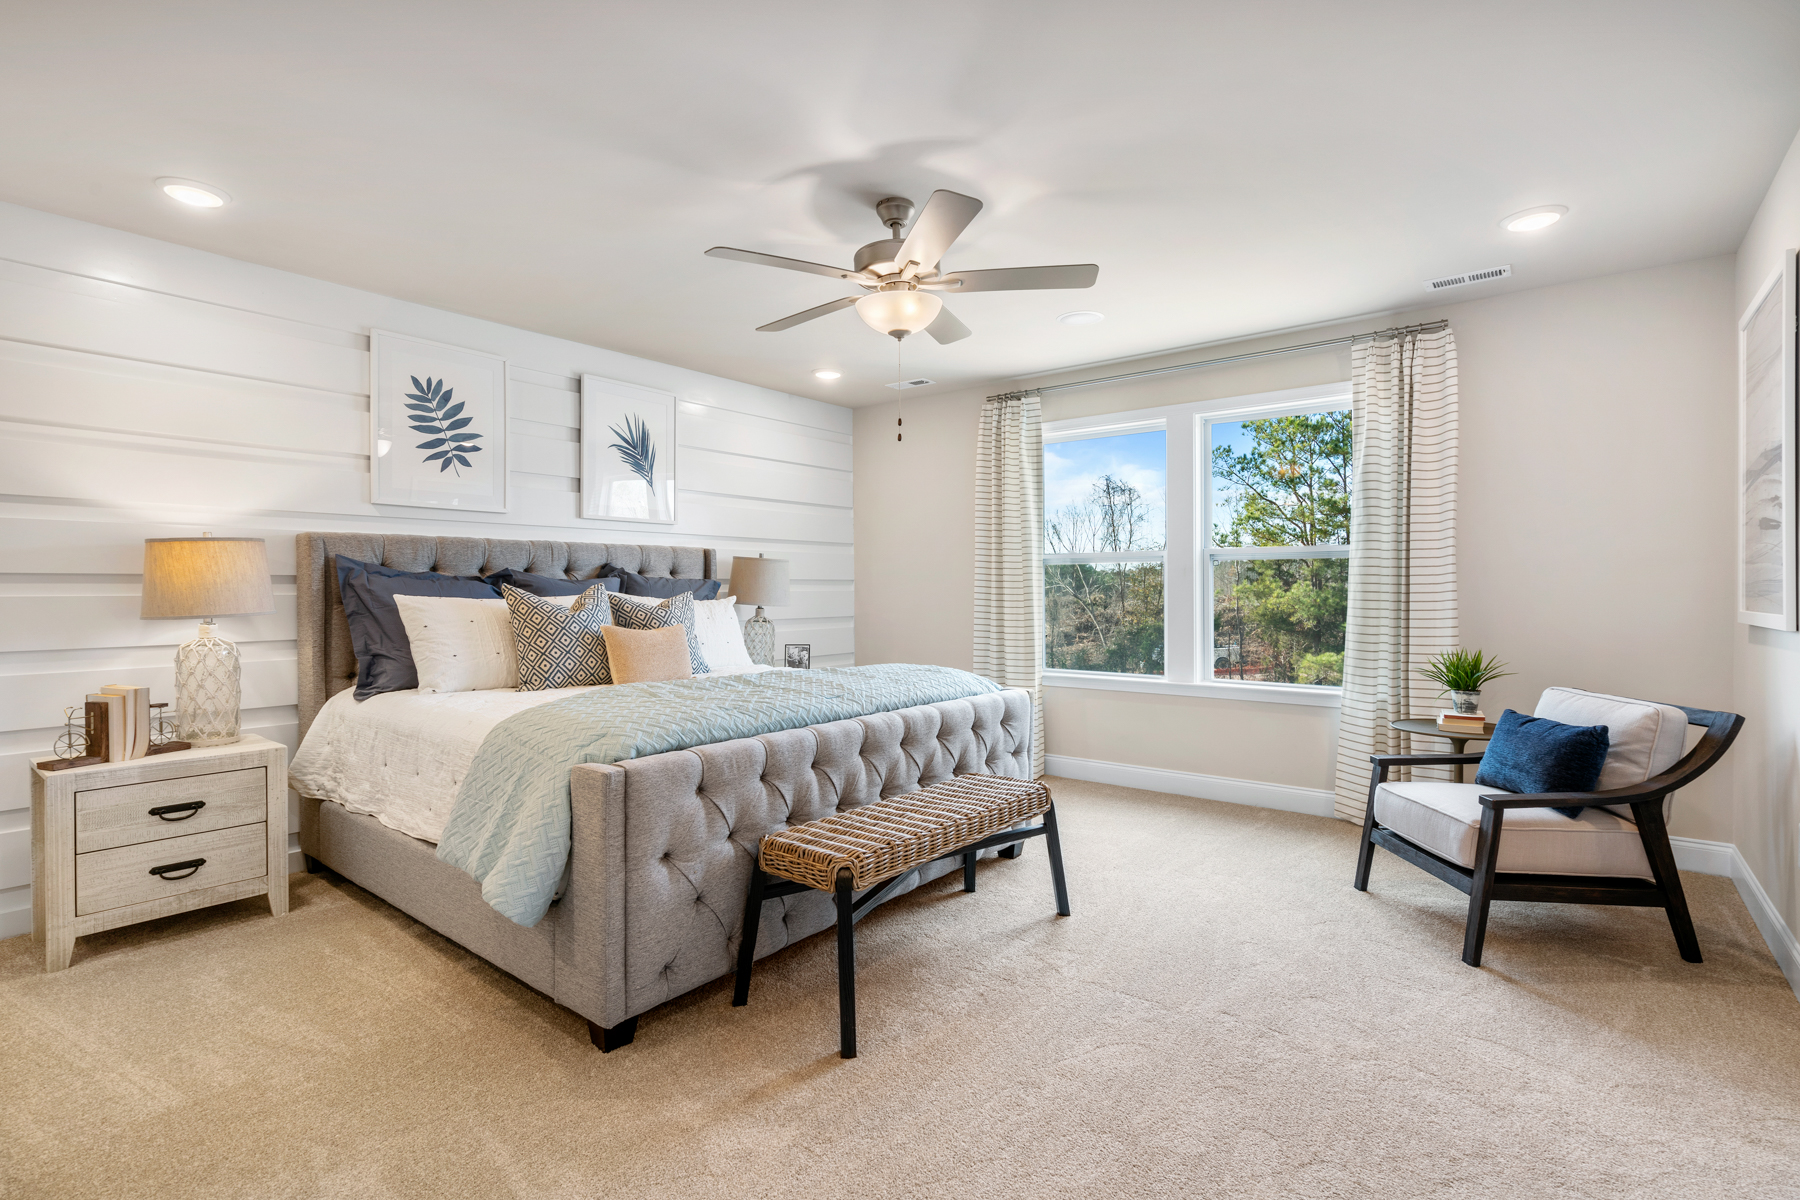 Oak Park Bedroom in Garner North Carolina by Mattamy Homes